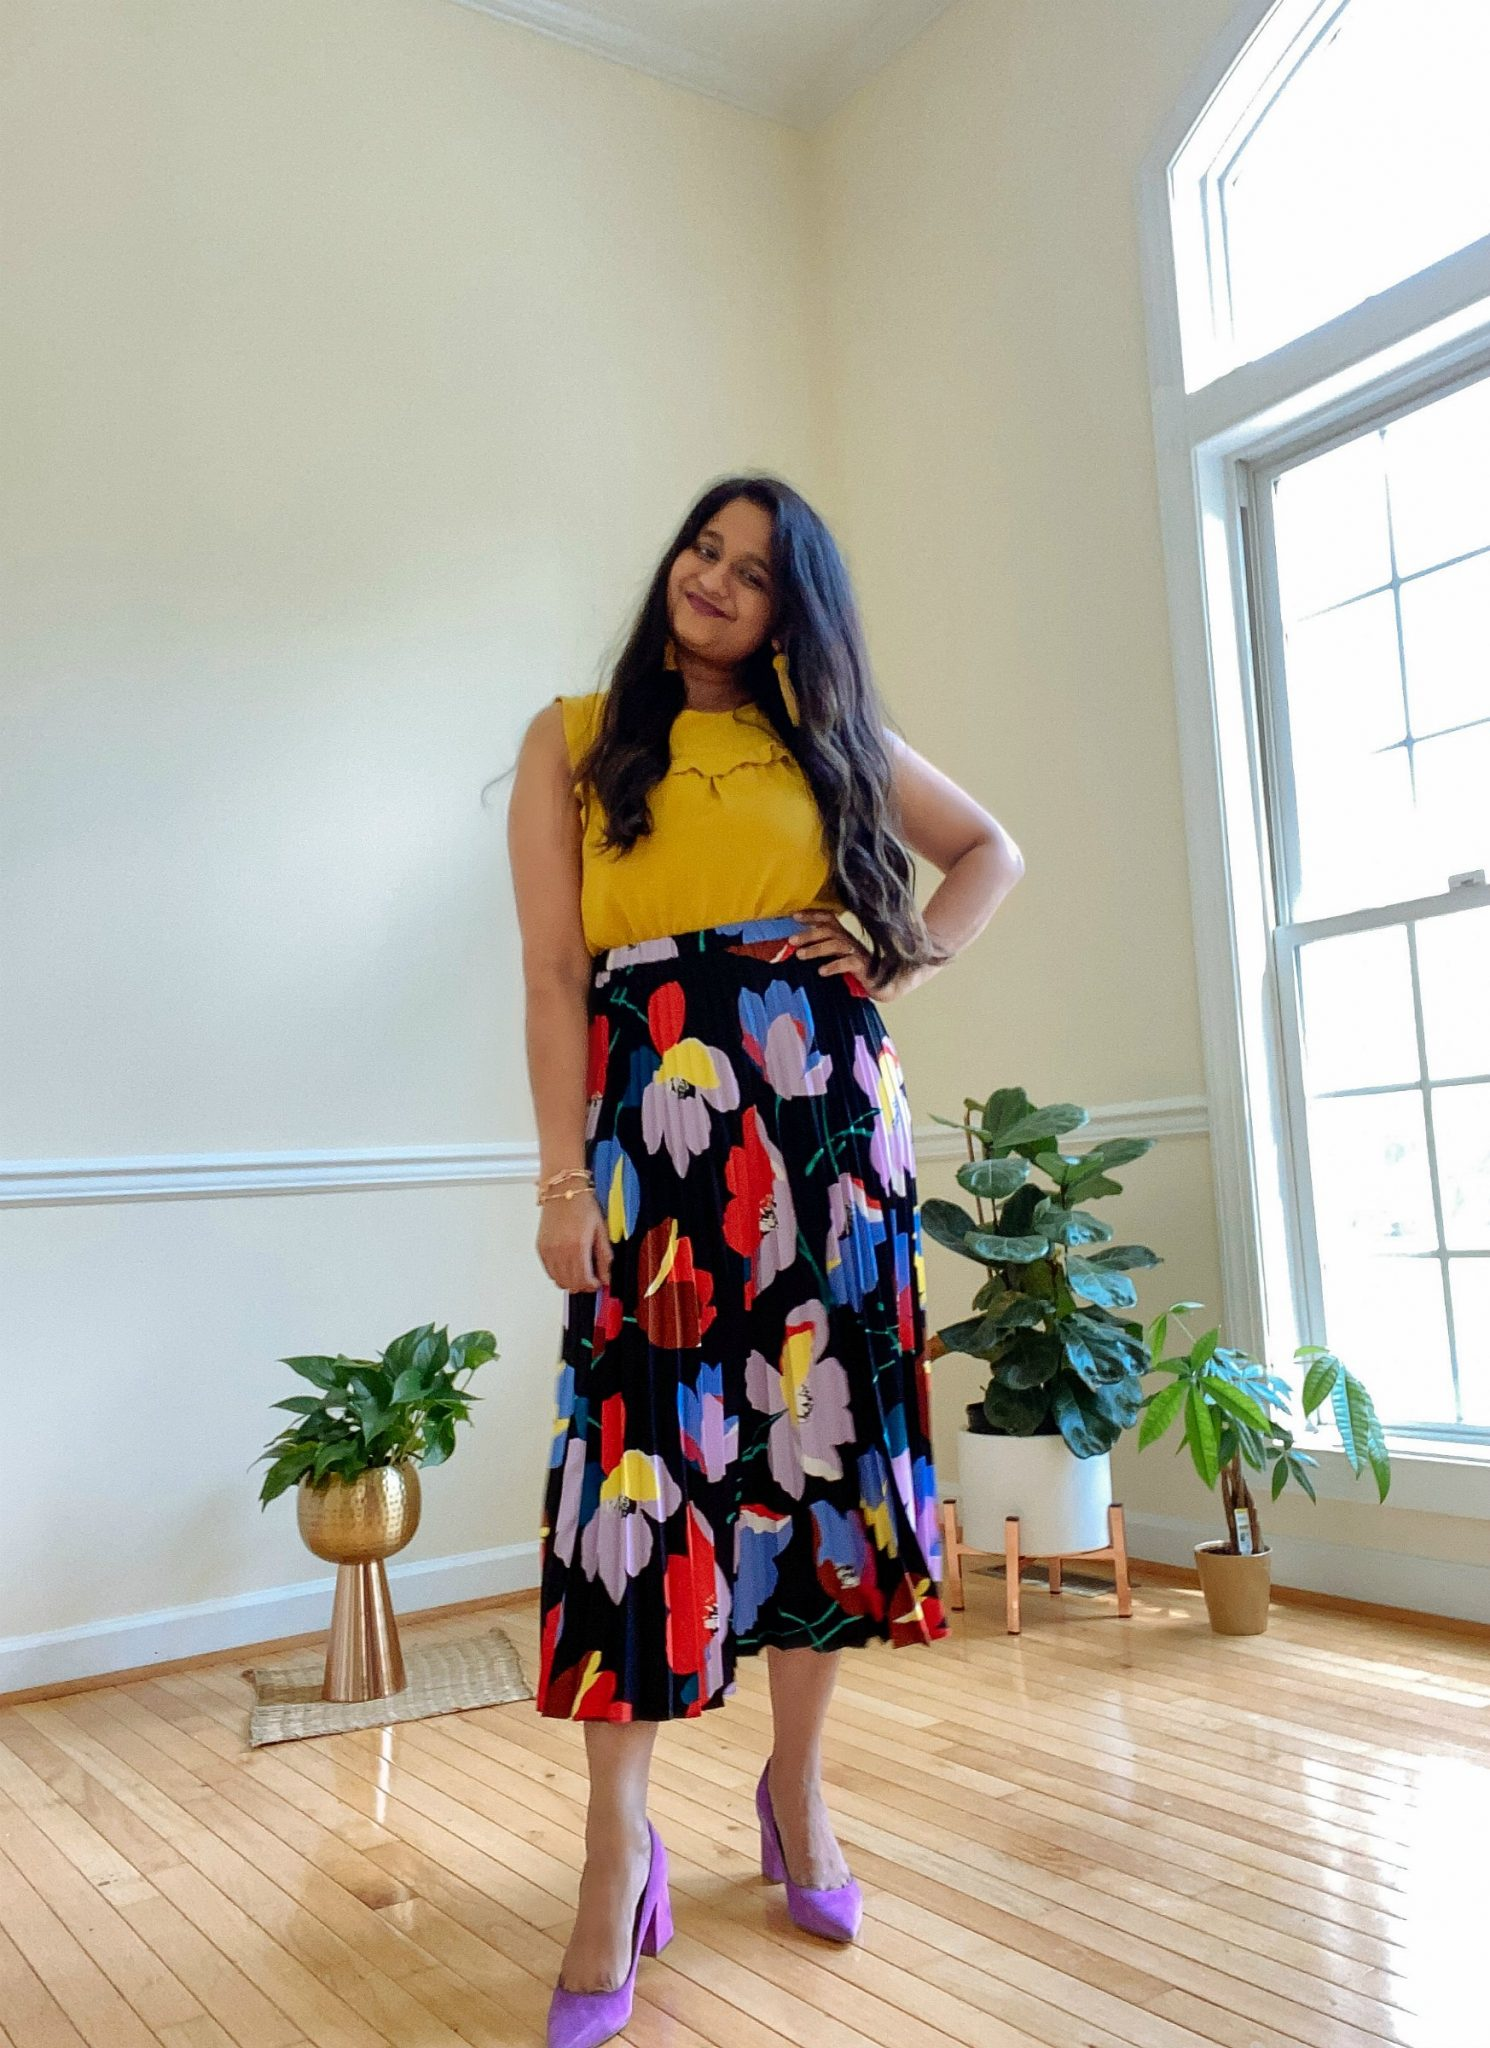 Halogen Floral pleated skirt, Loft Shell in yellow, Marc Fisher Zala pumps in purple 1 | Casual Outfits by popular Maryland lifestyle blog, Dreaming Loud: image of a woman wearing a Halogen Floral pleated skirt, Loft Shell in yellow, and Marc Fisher Zala pumps in purple.